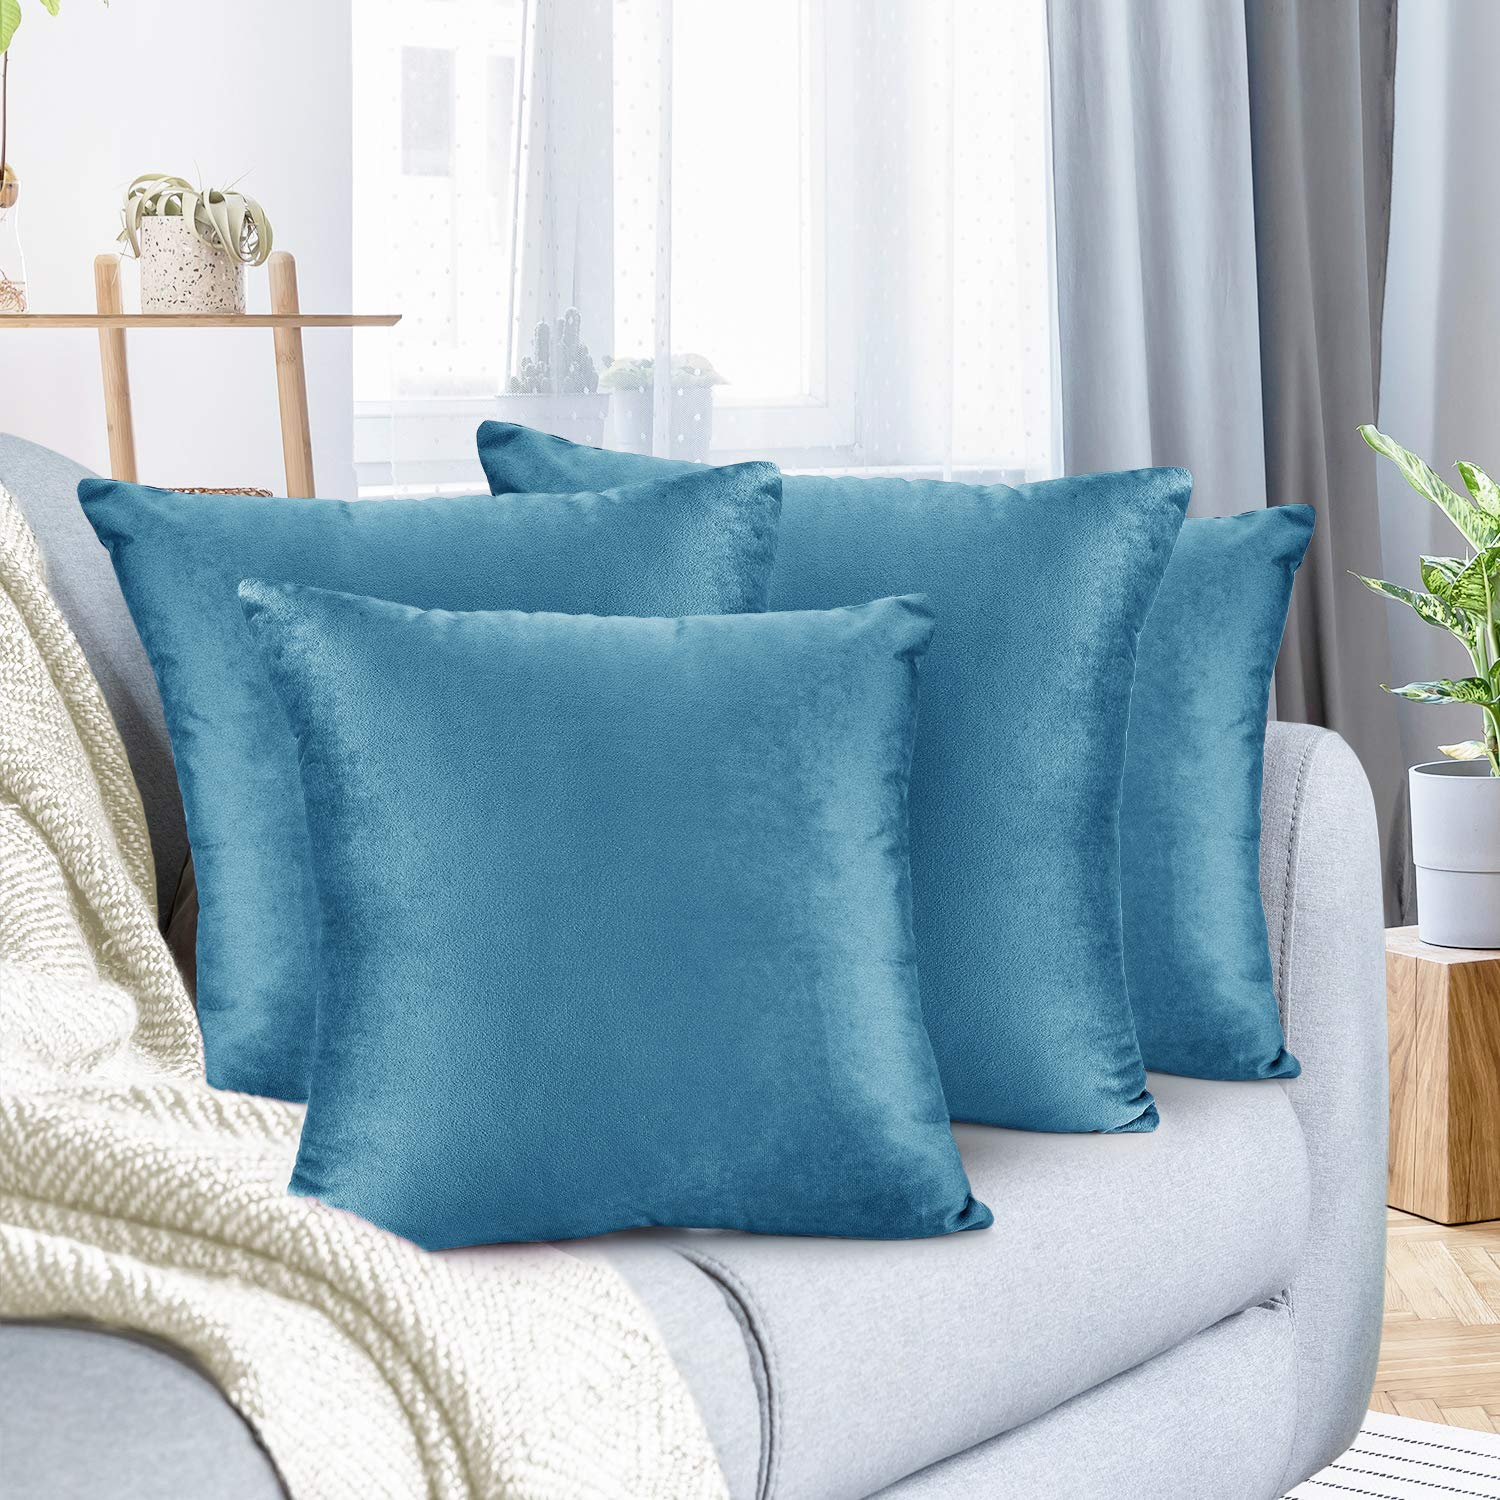 """Nestl Bedding Throw Pillow Cover 20"""" x 20"""" Soft Square Decorative Throw Pillow Covers Cozy Velvet Cushion Case for Sofa Couch Bedroom, Set of 4, Blue Heaven"""